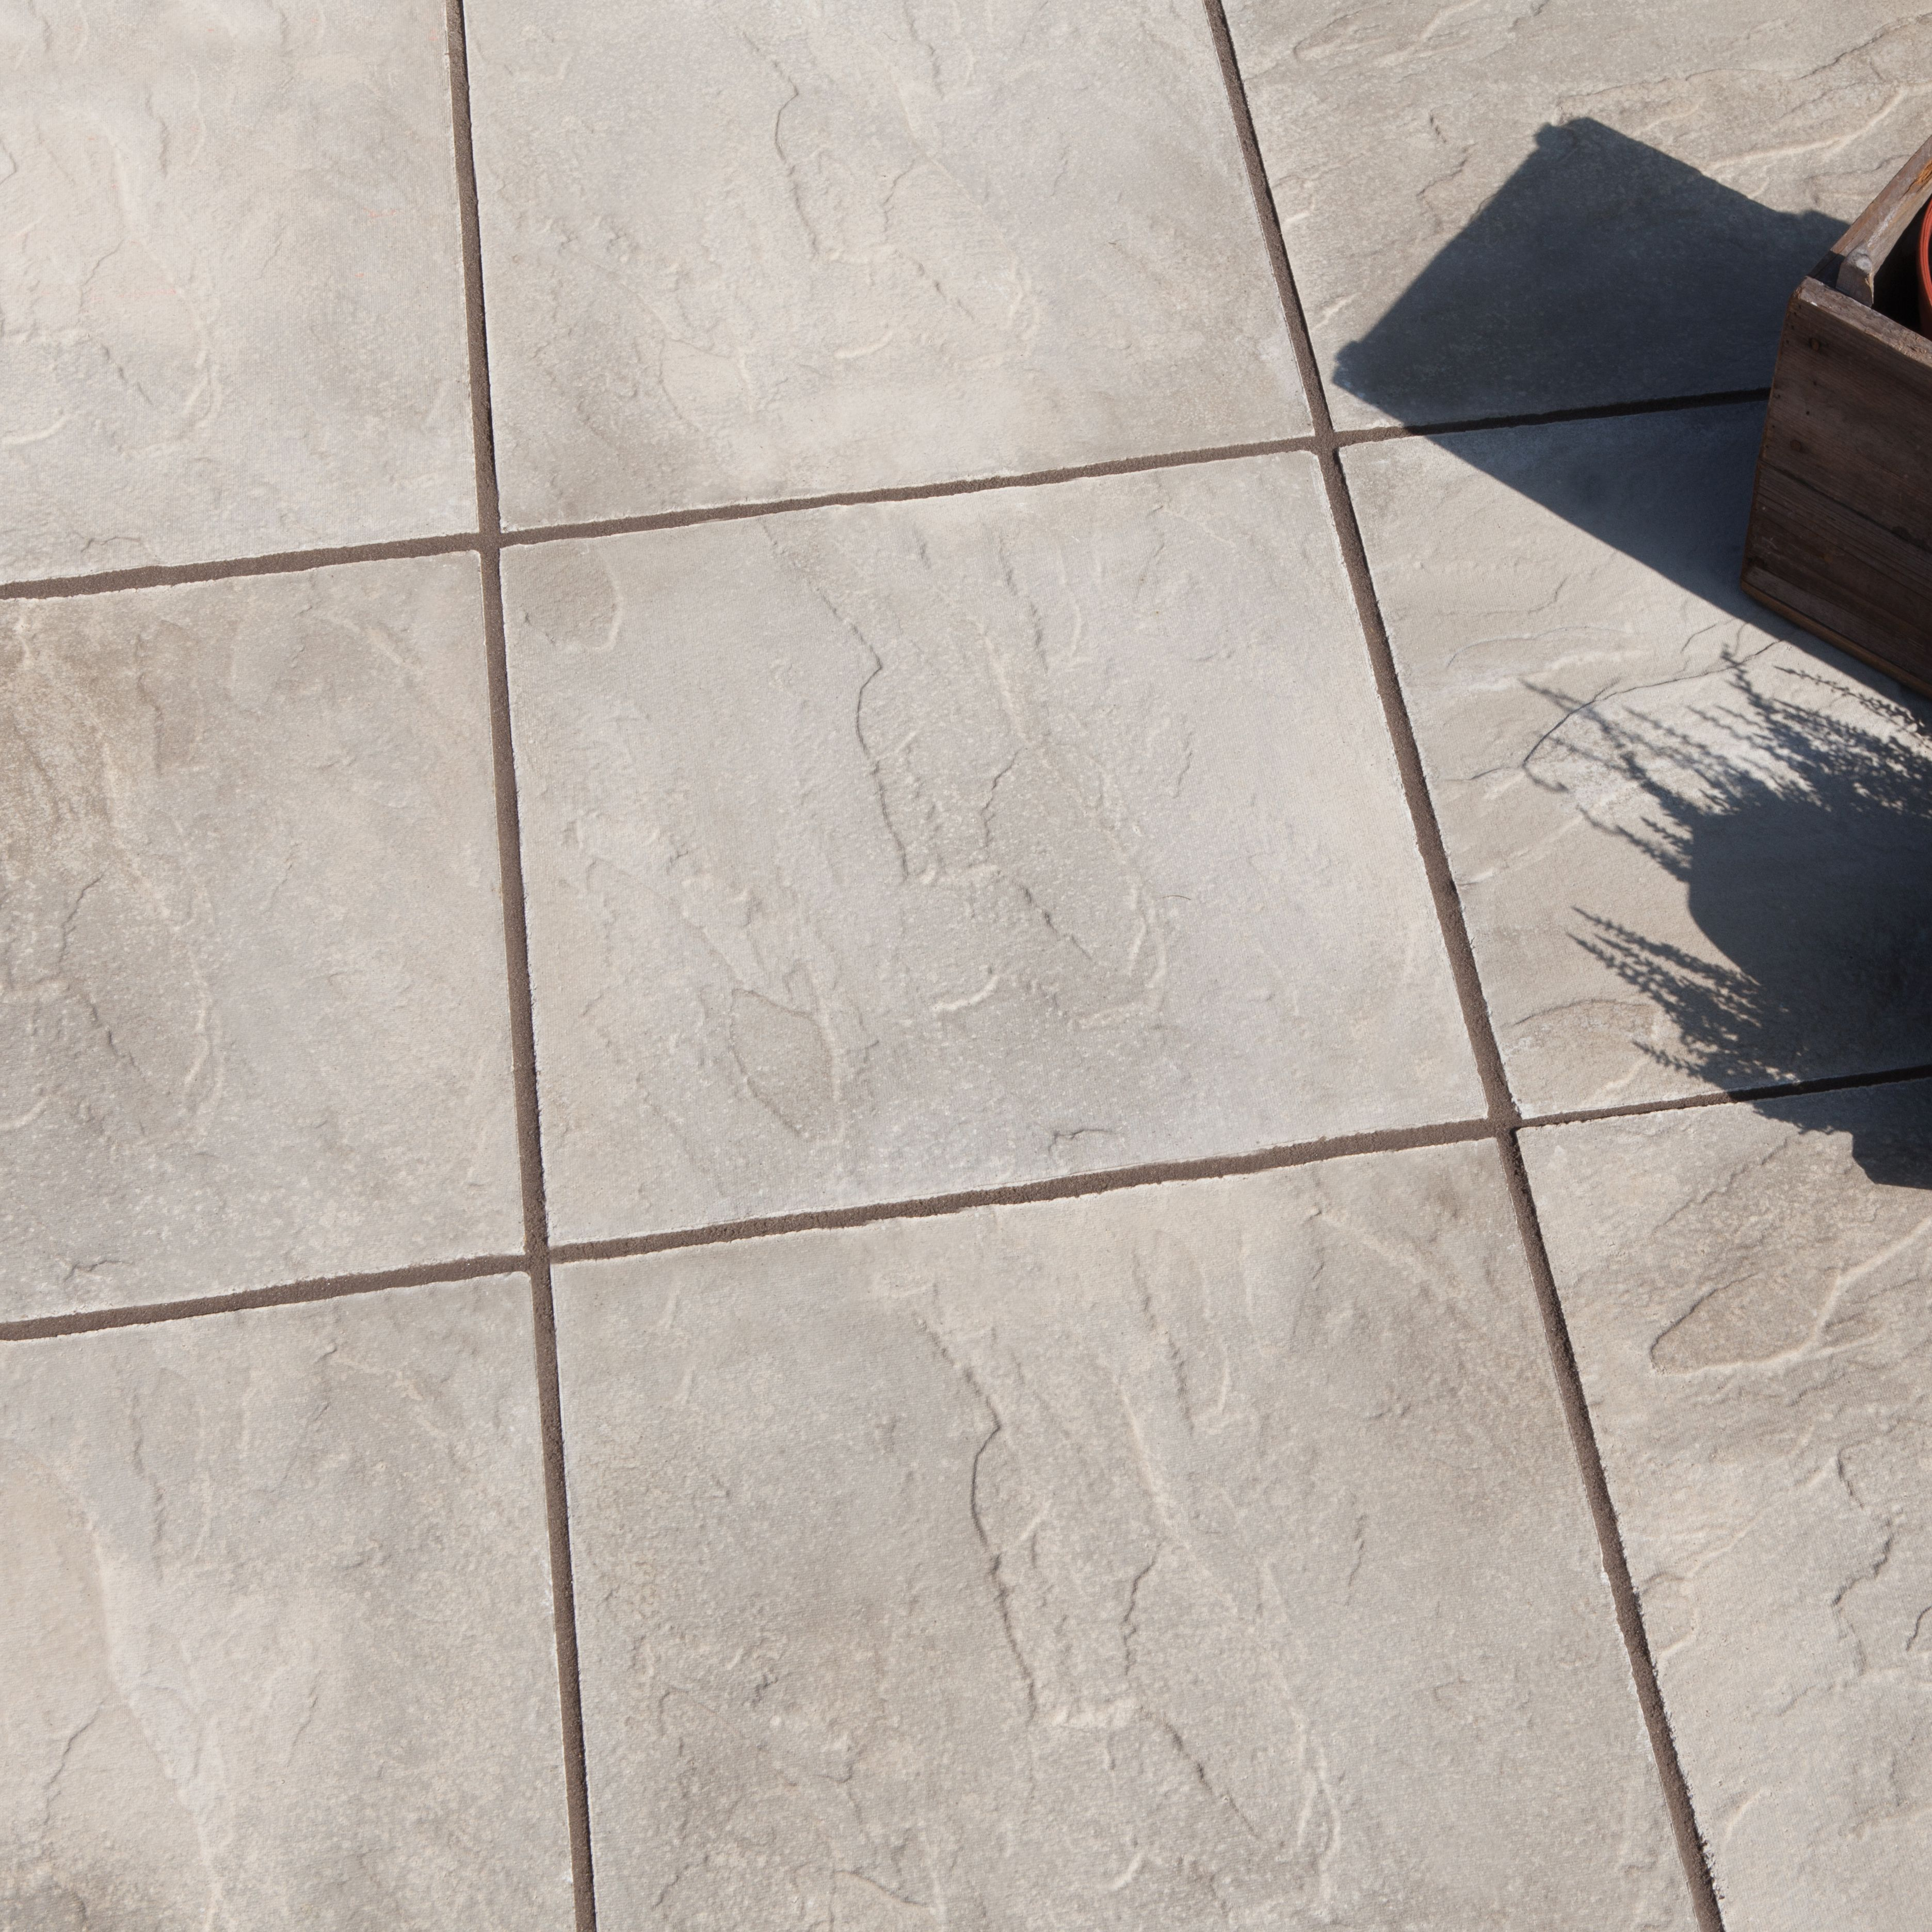 Non Slip Concrete Patio Paint Patio Deck Non Slip Coating